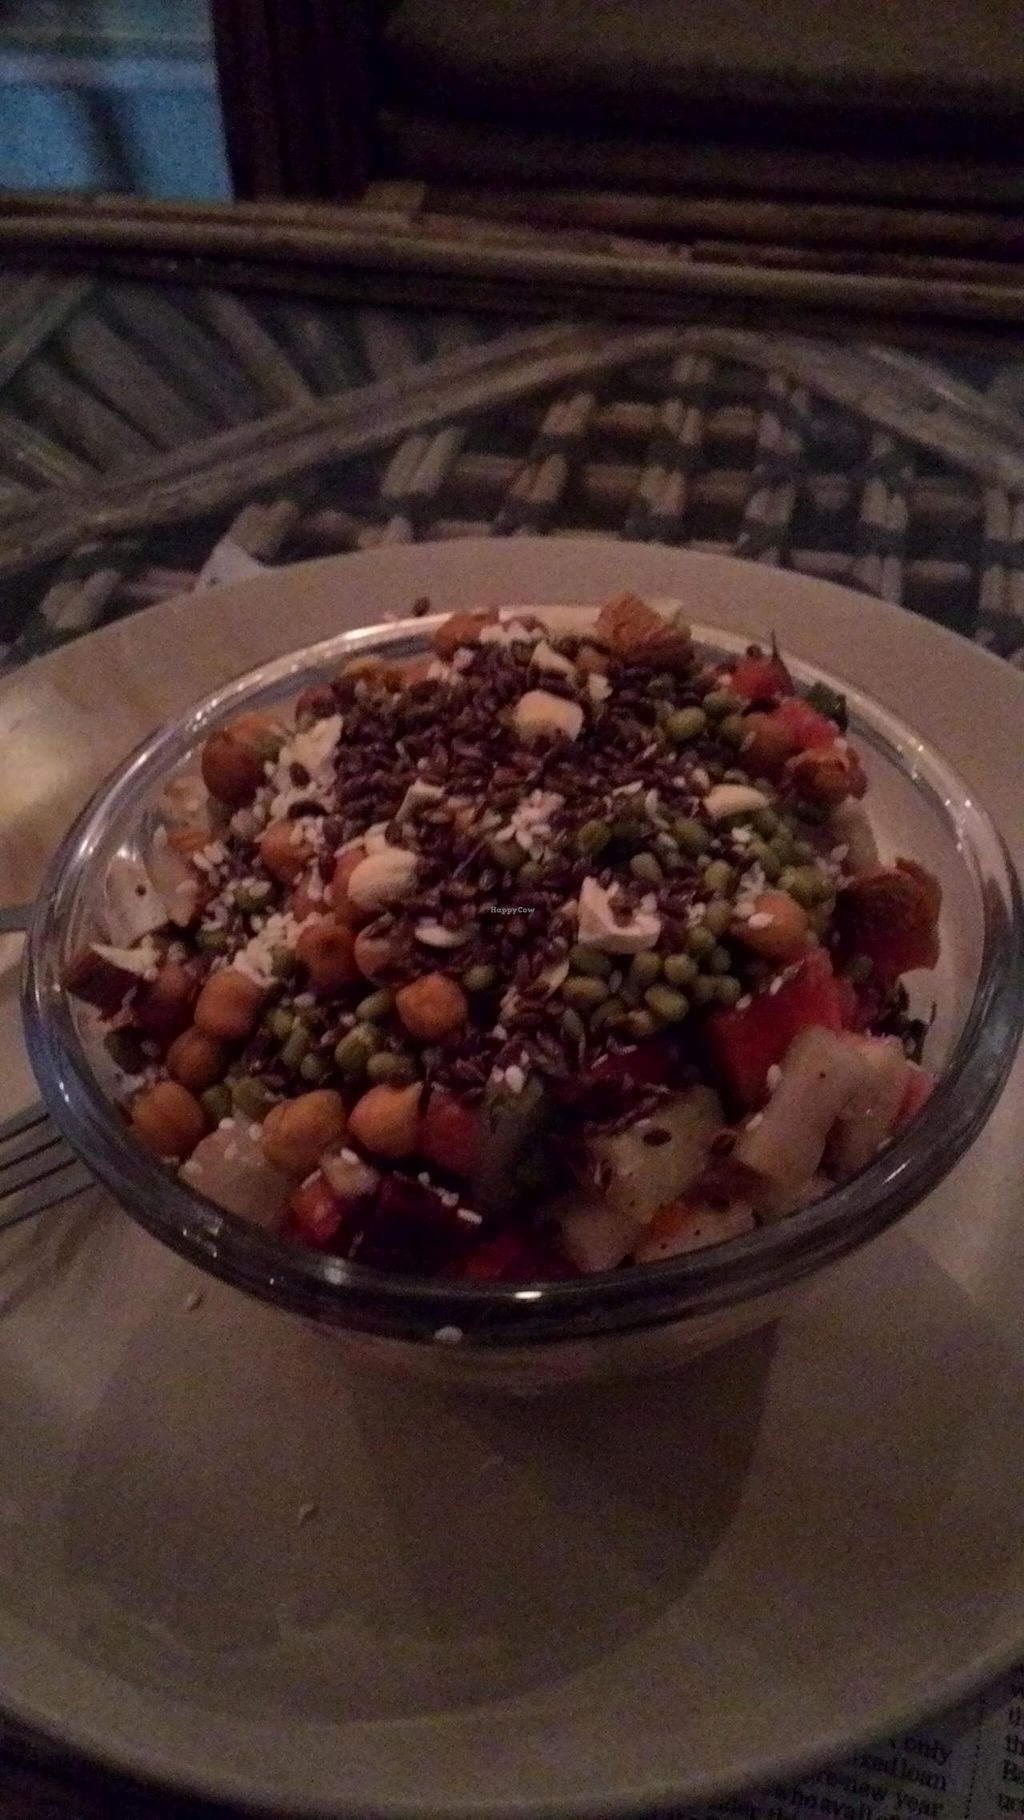 """Photo of Soul Kitchen  by <a href=""""/members/profile/RenkeFlexanist"""">RenkeFlexanist</a> <br/>Pineapple salad <br/> January 12, 2015  - <a href='/contact/abuse/image/54255/90271'>Report</a>"""